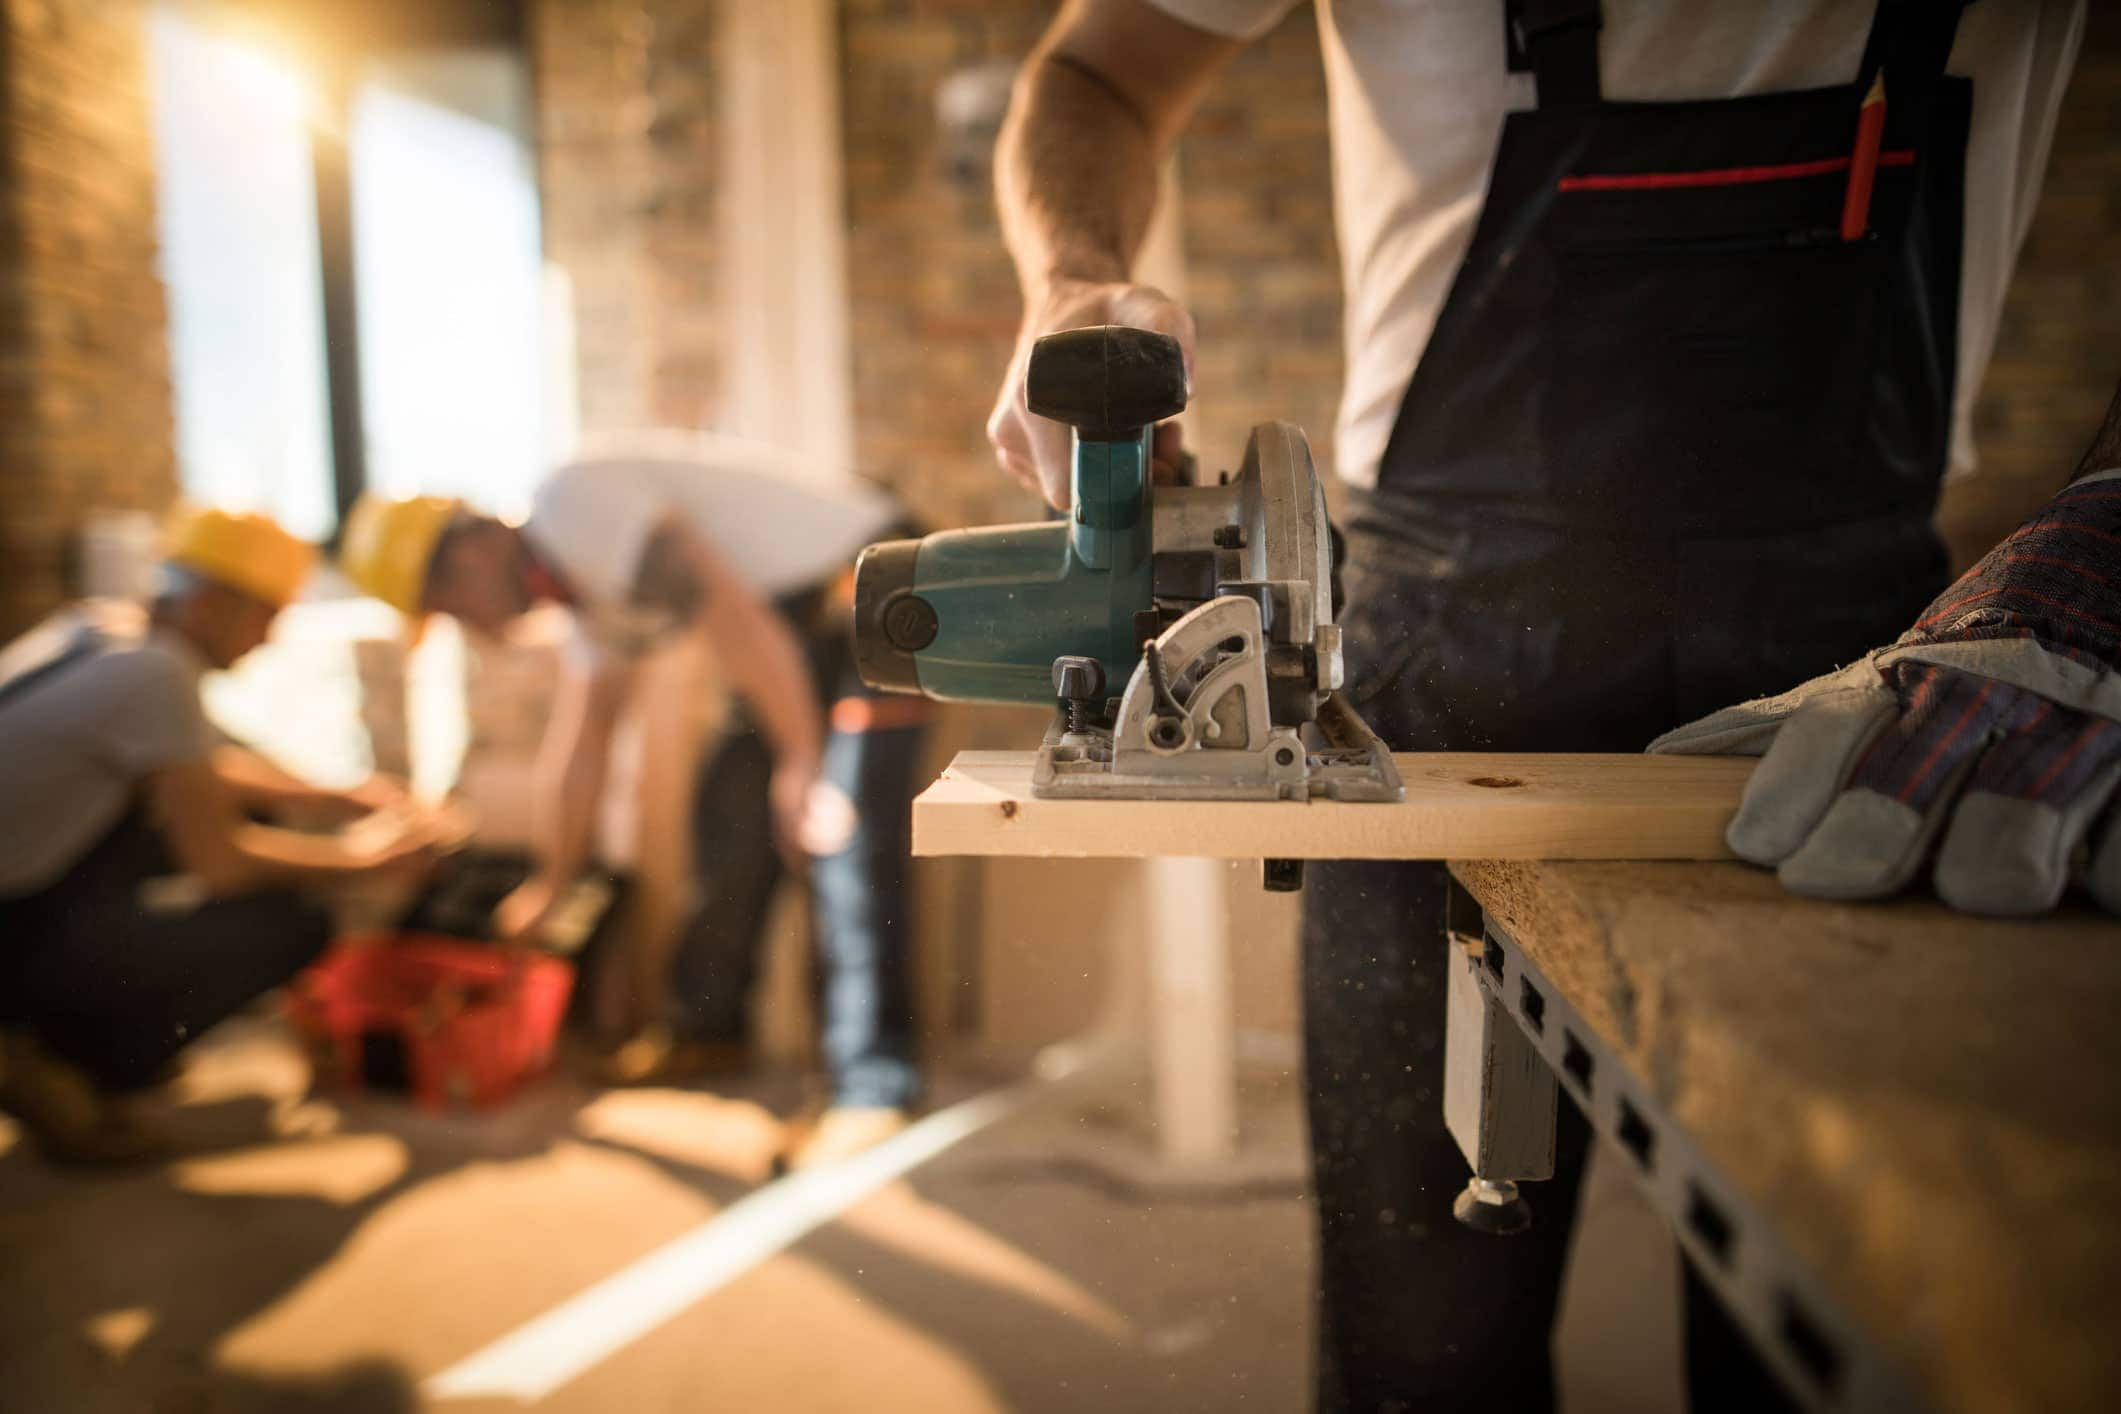 Handyman vs. general contractor: What can a handyman legally do? | Thimble